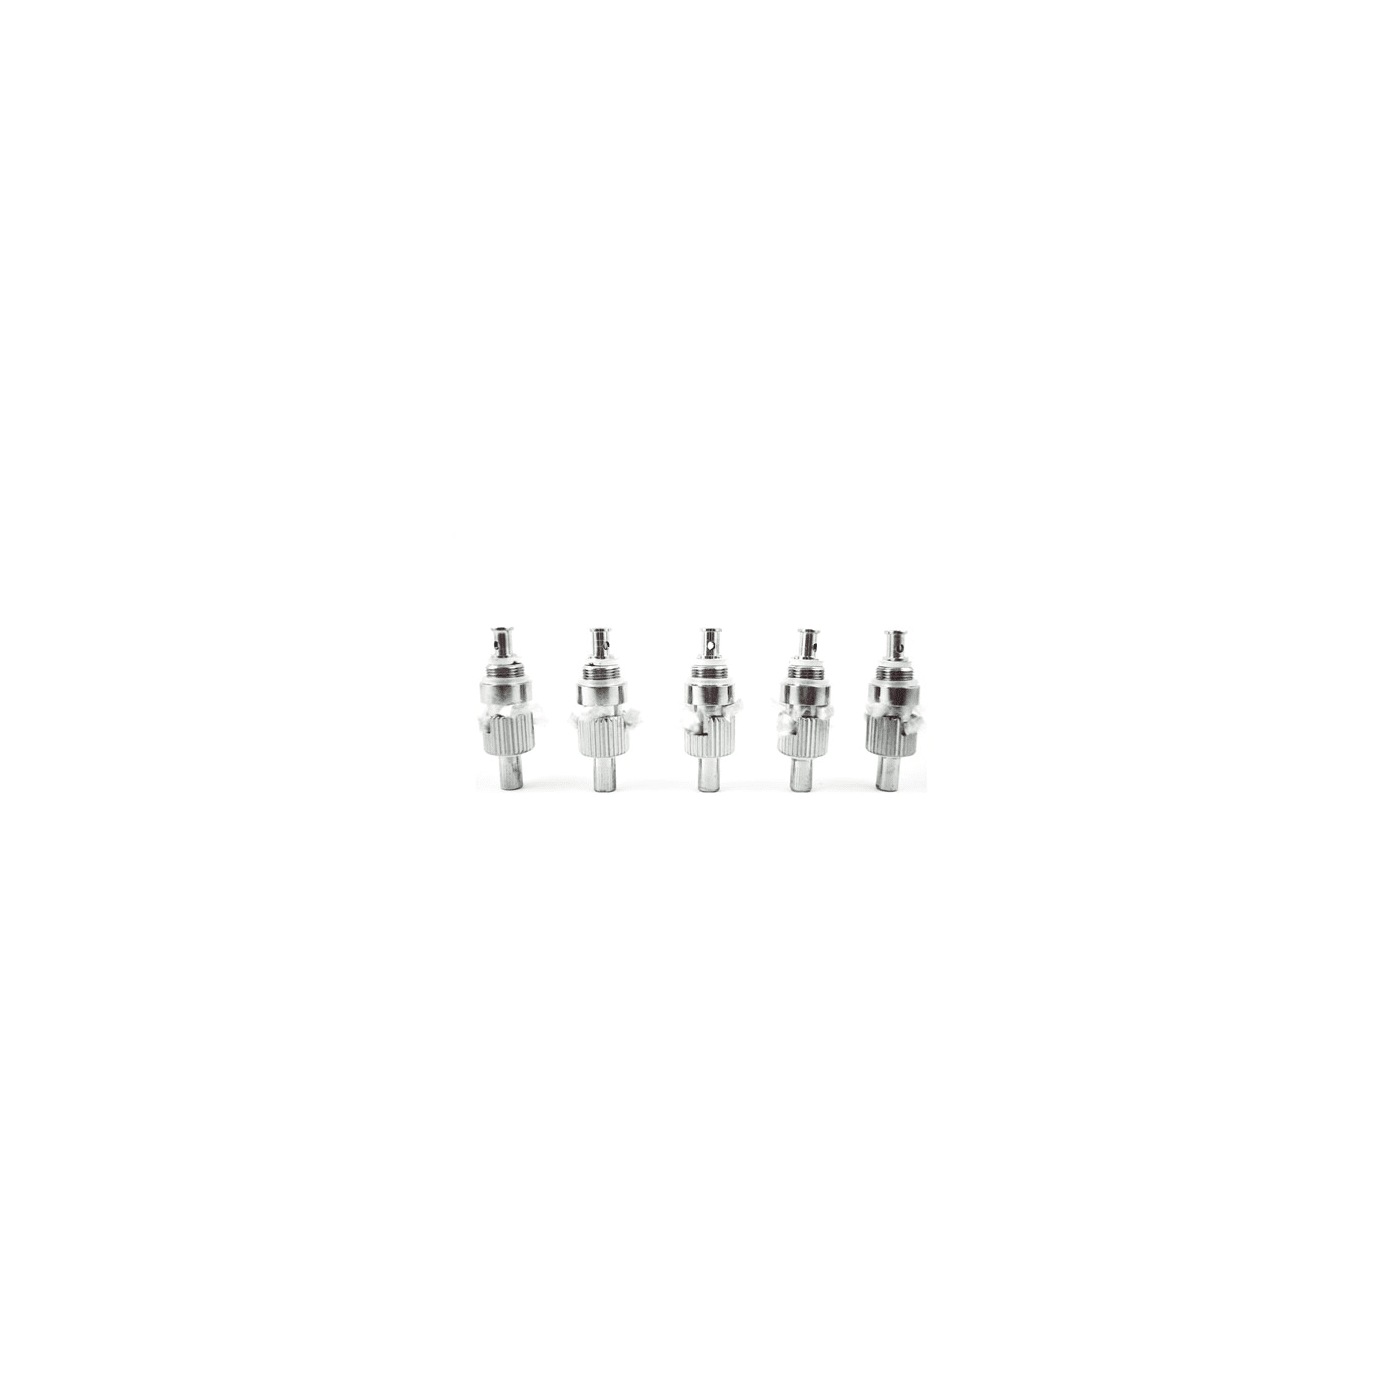 Innokin iClear 30B Replacement Heads - 5 Pack